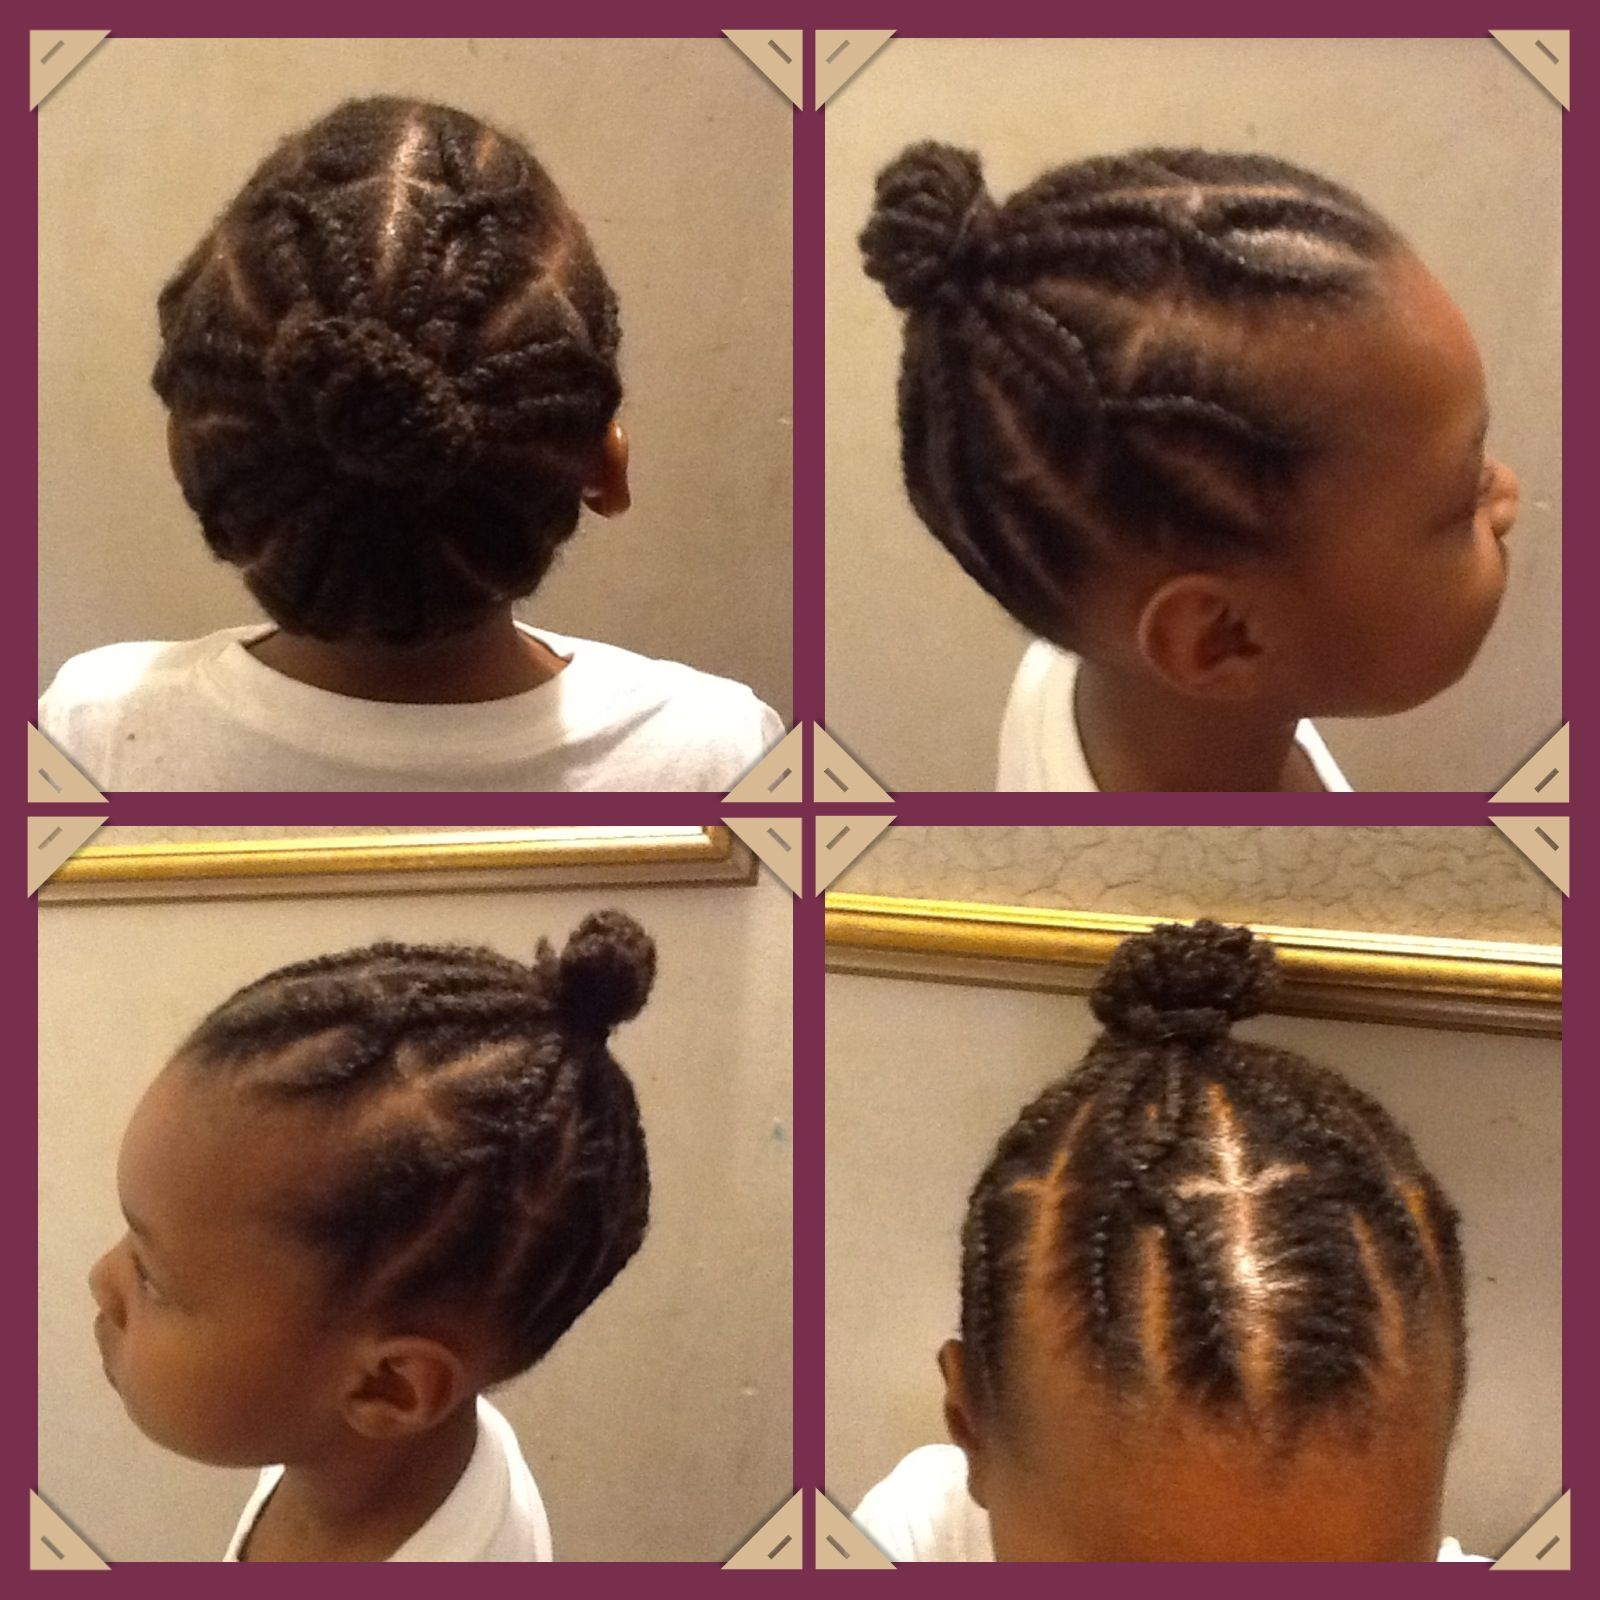 Pin by Dionne Bishop on Protective Natural Hair | Hair ...